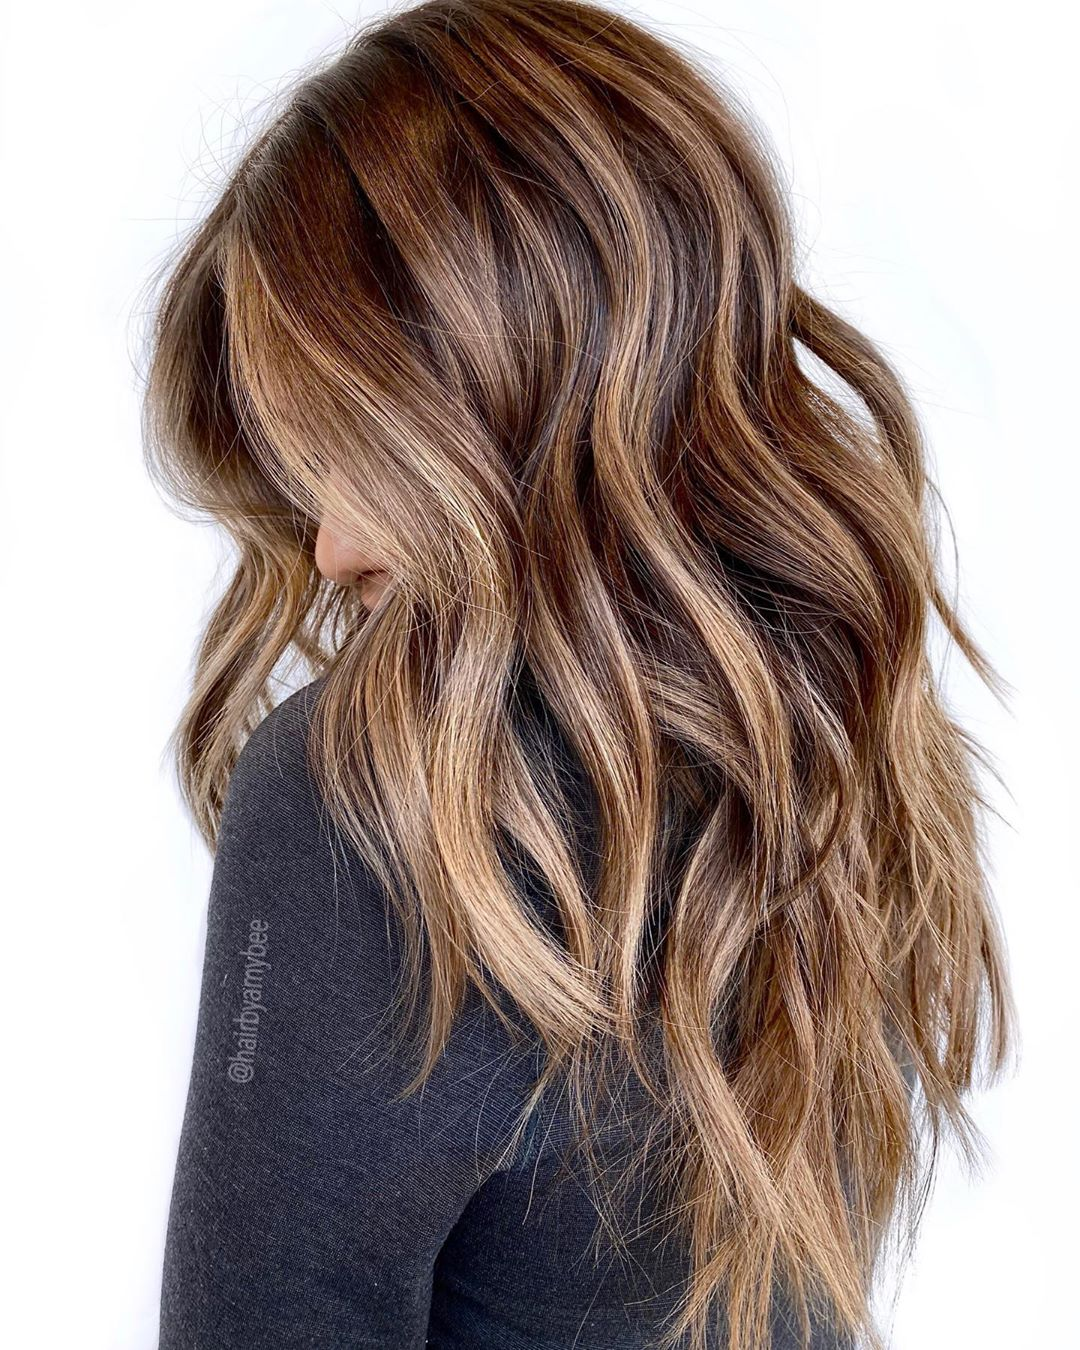 Brown Hair with 3D Caramel Highlights